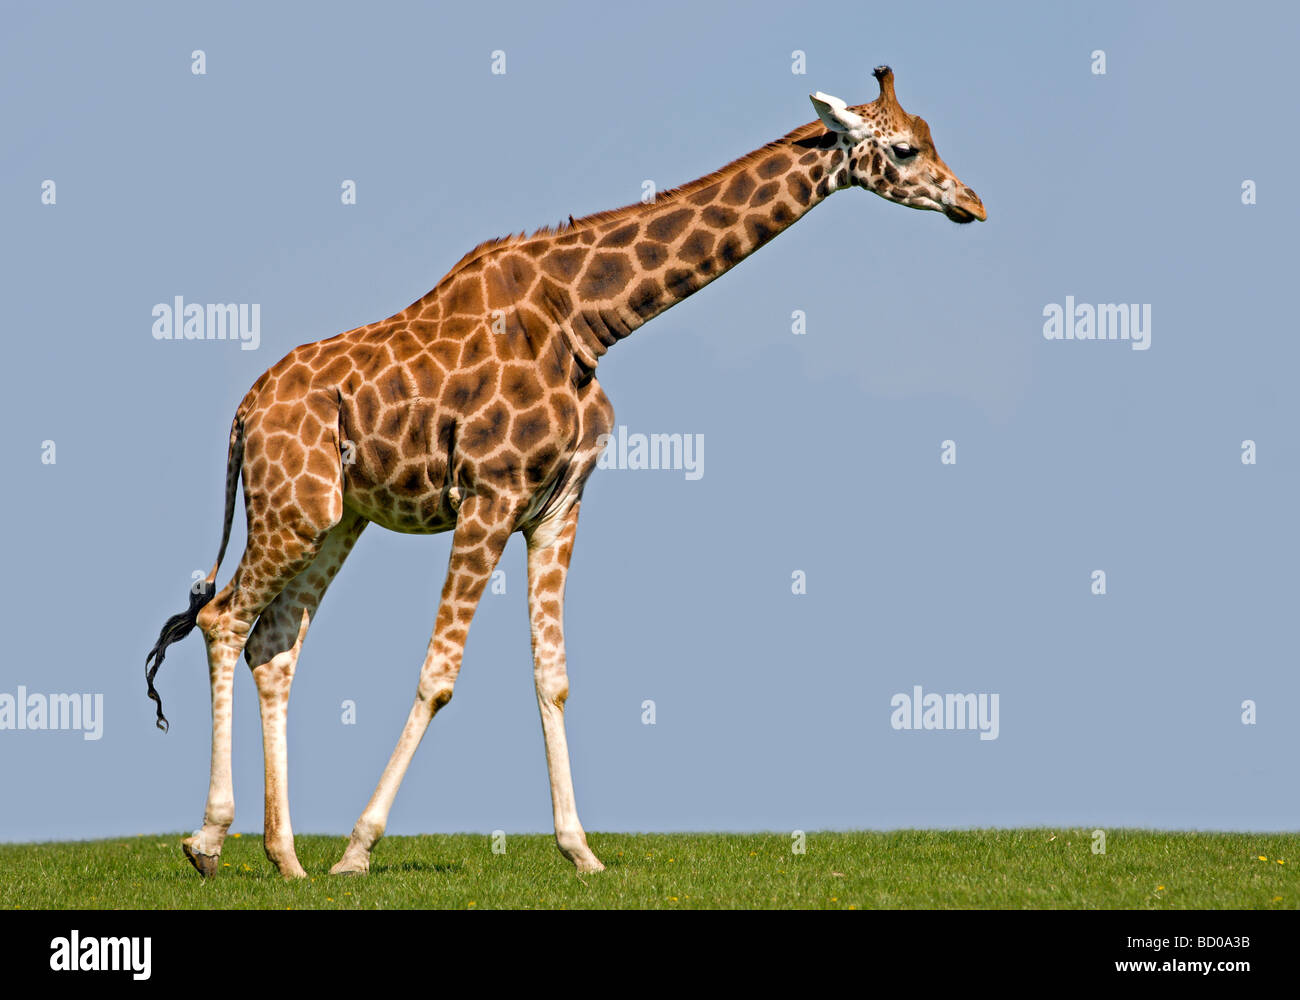 Girafe (Giraffa) camelopardarlis Photo Stock